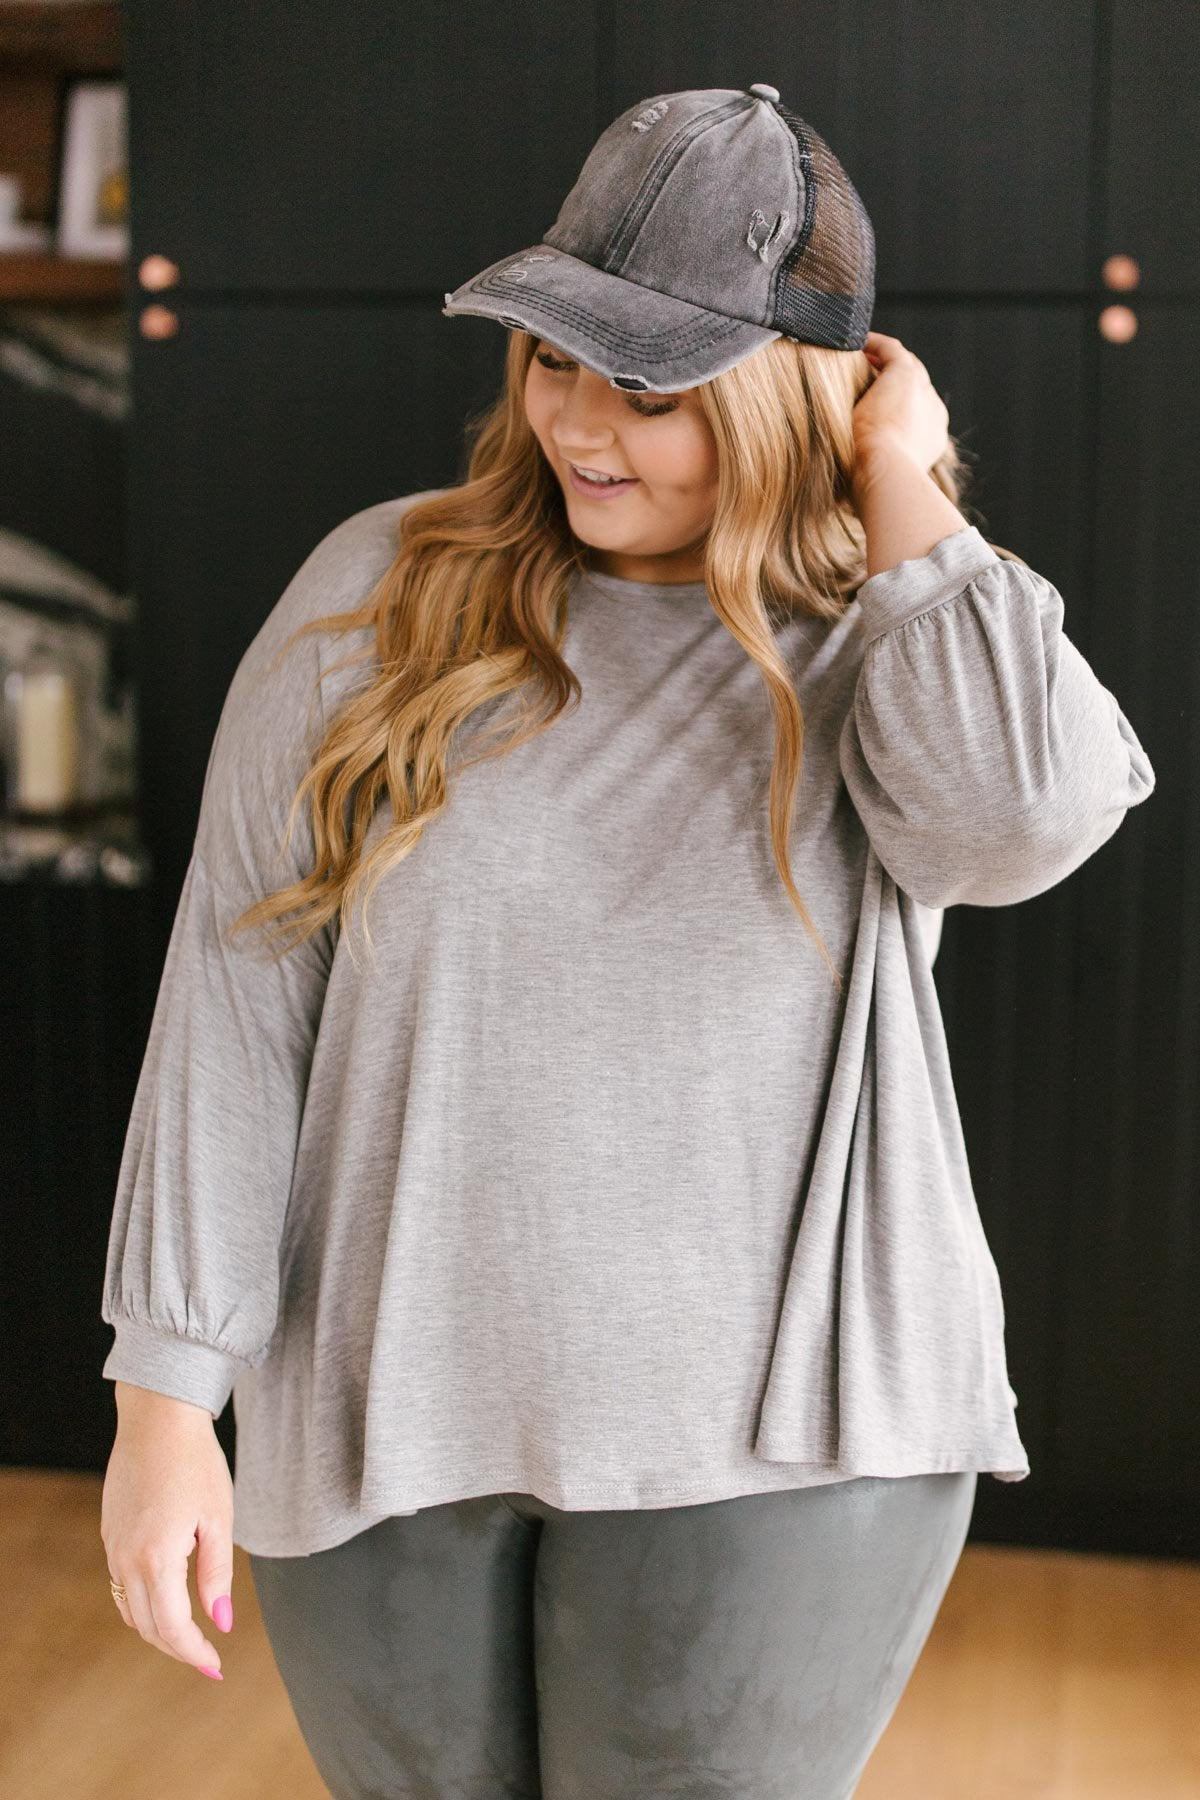 Open Minds Top in Gray